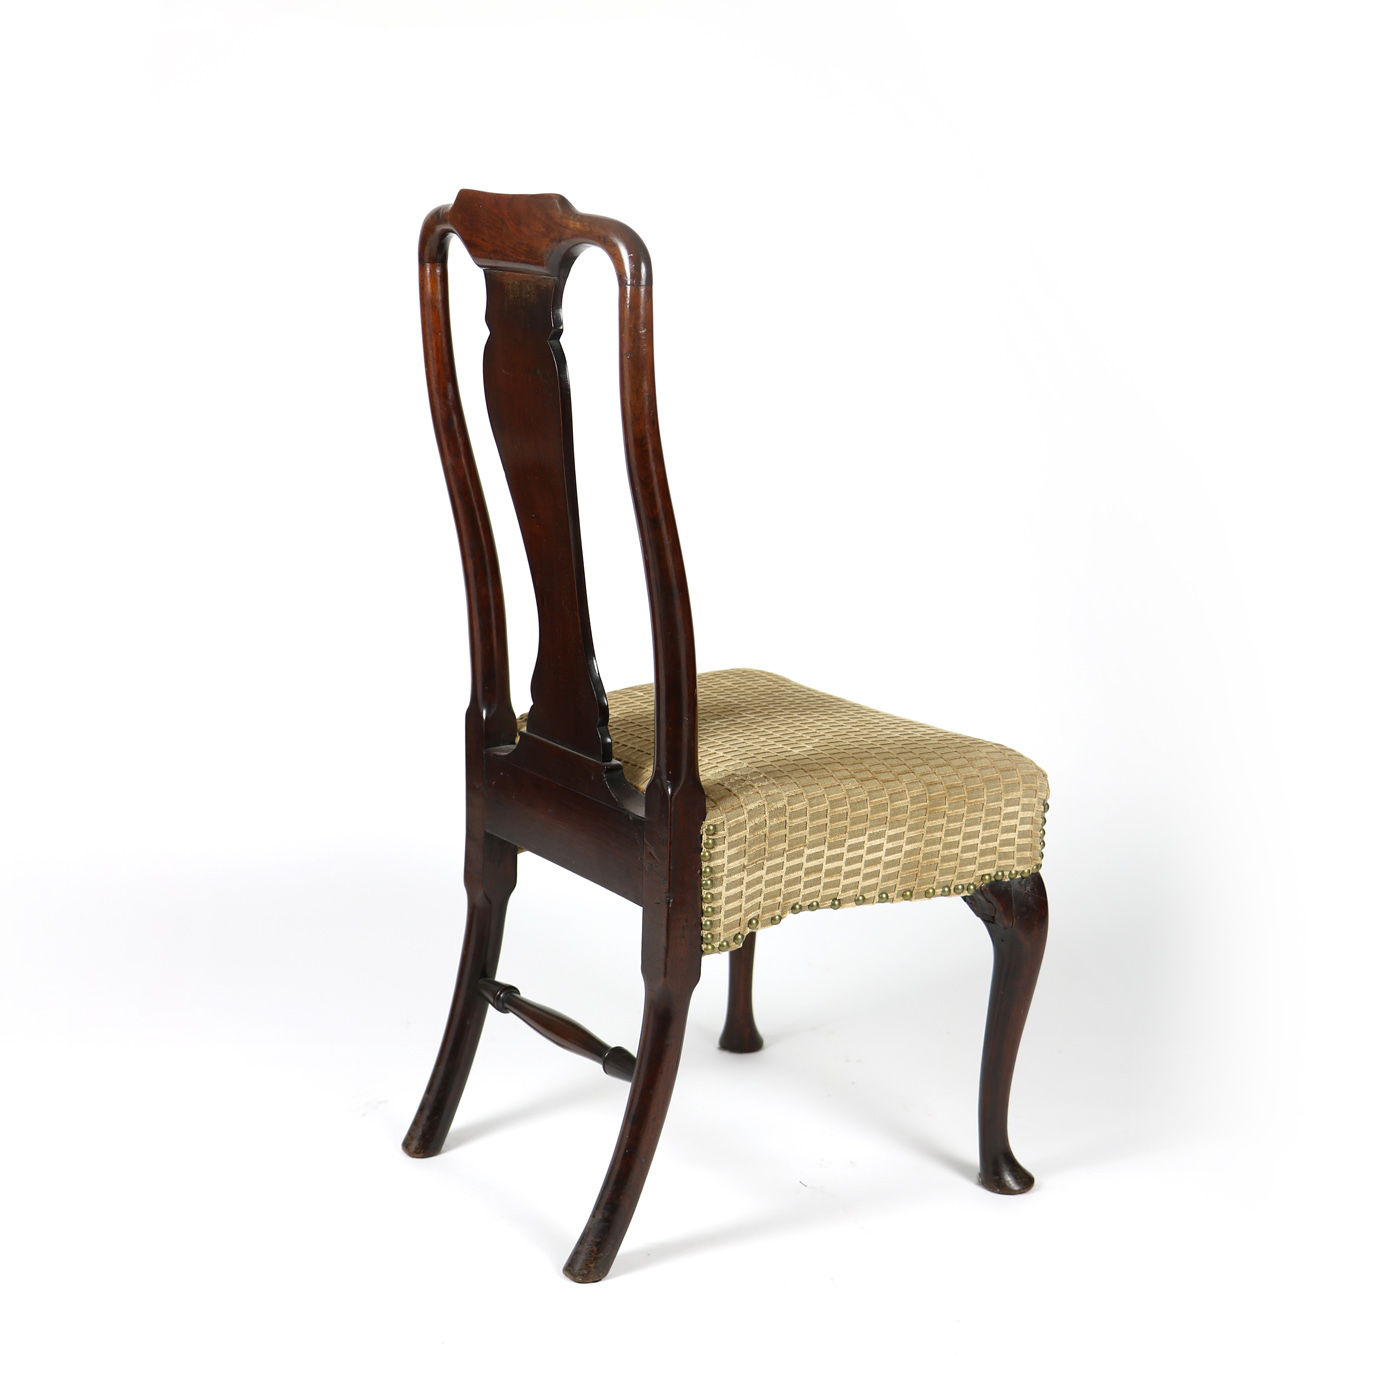 18th Century Walnut Dining Chair with Queen Anne Legs English